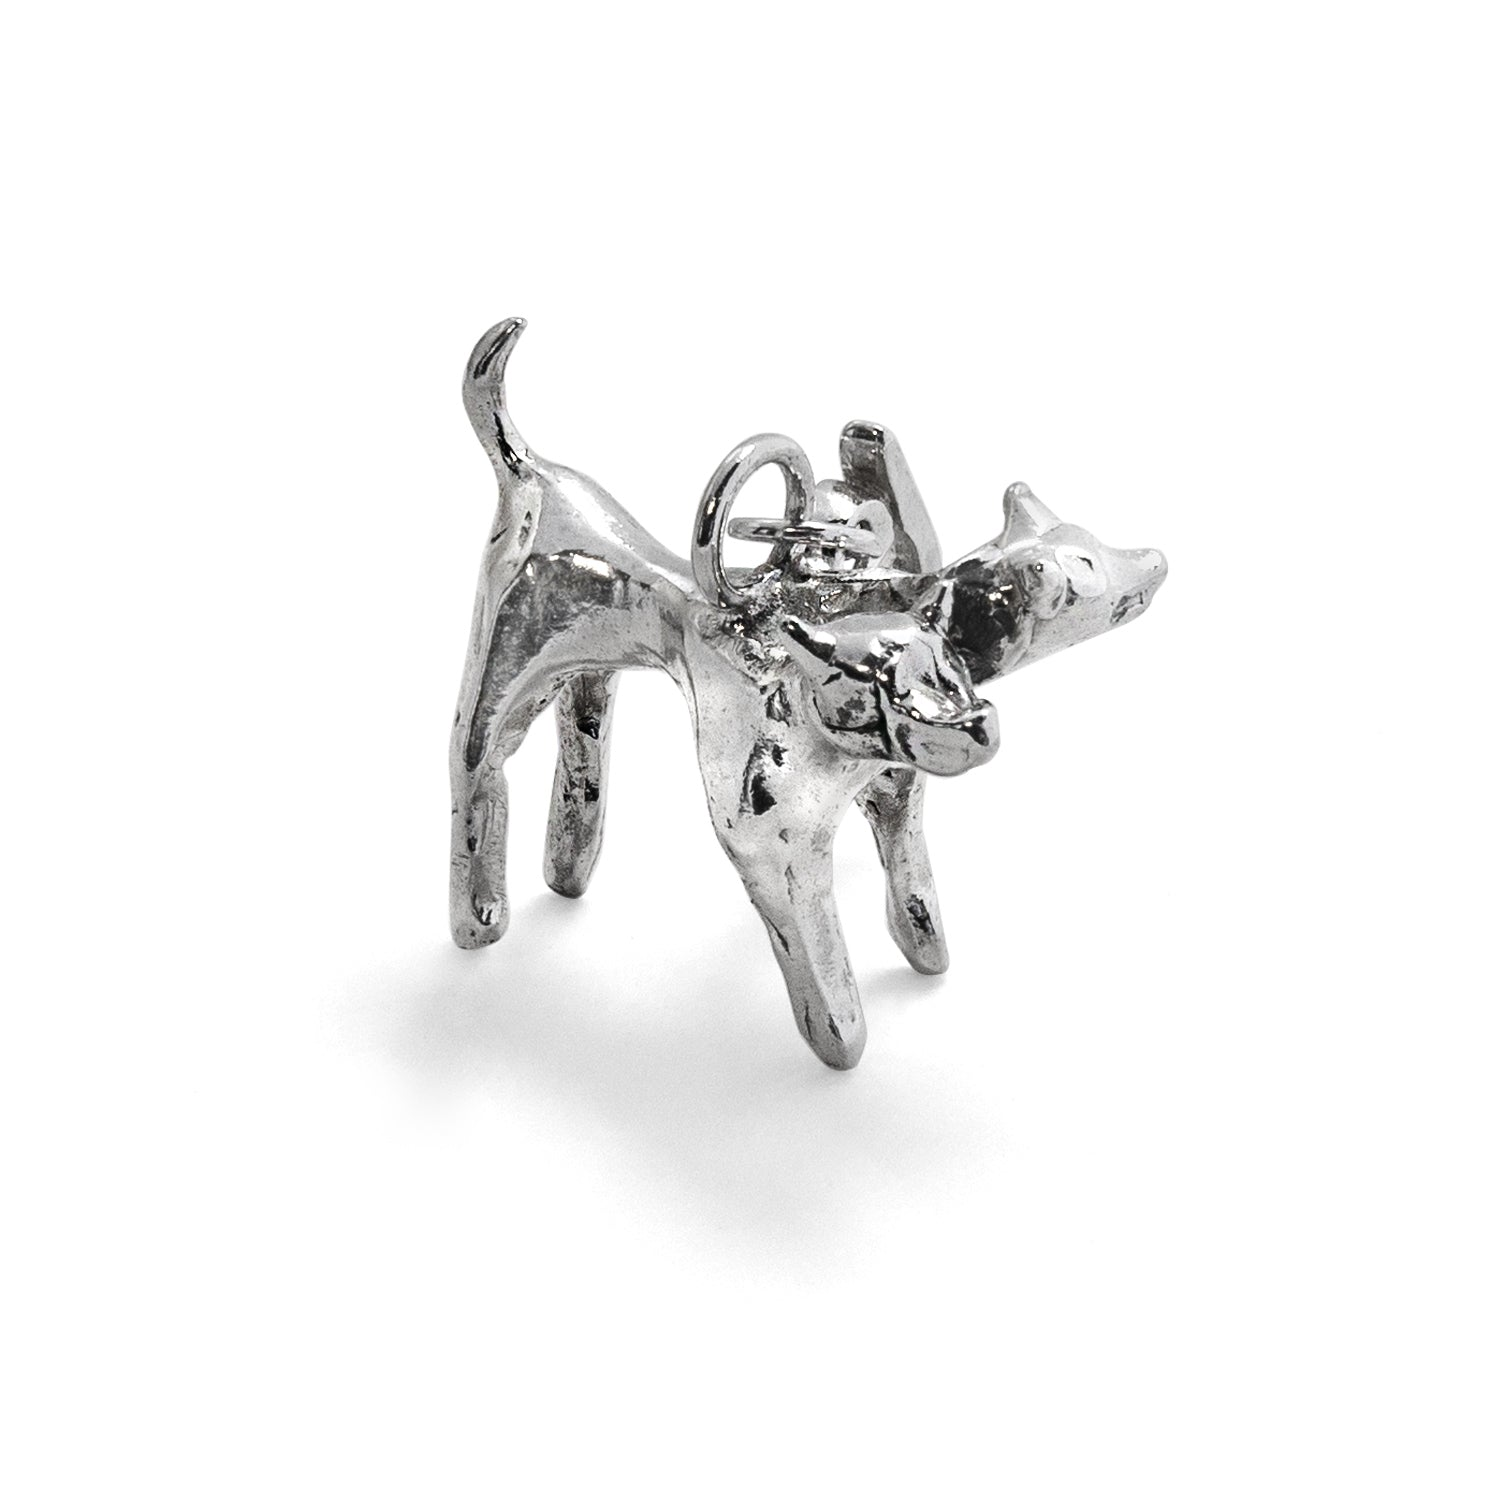 Two-Headed Hound Silver Charm